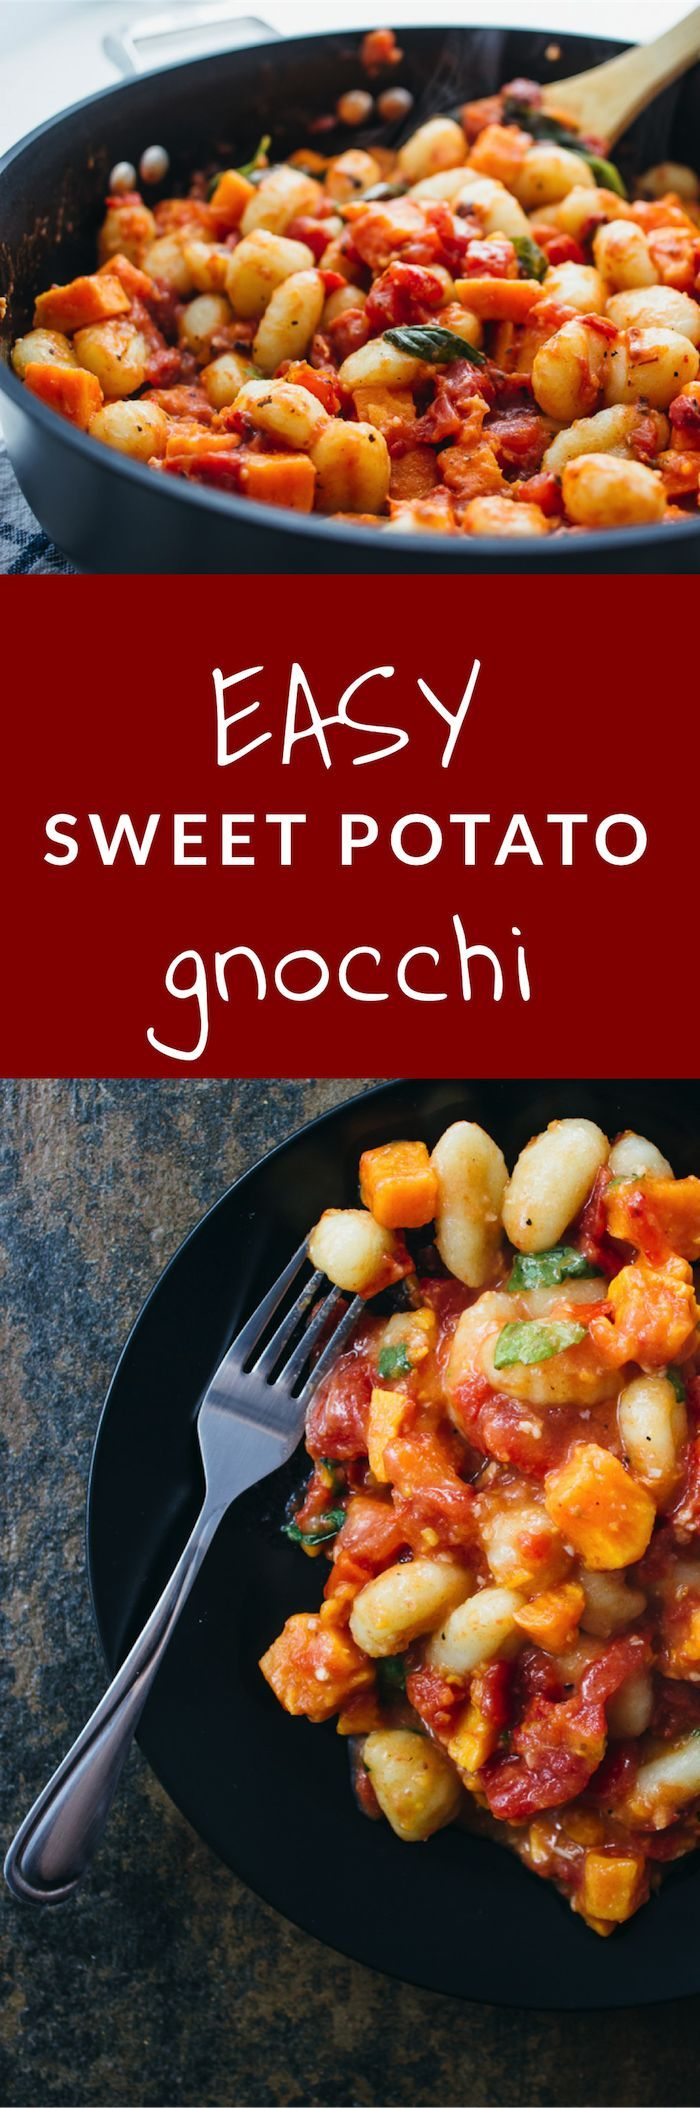 A deliciously creamy gnocchi pasta dish with sweet potato chunks. Everything is covered in the goodness that is a garlicky tomato sauce with basil. This recipe is perfect for weeknight dinners and make for excellent leftovers!